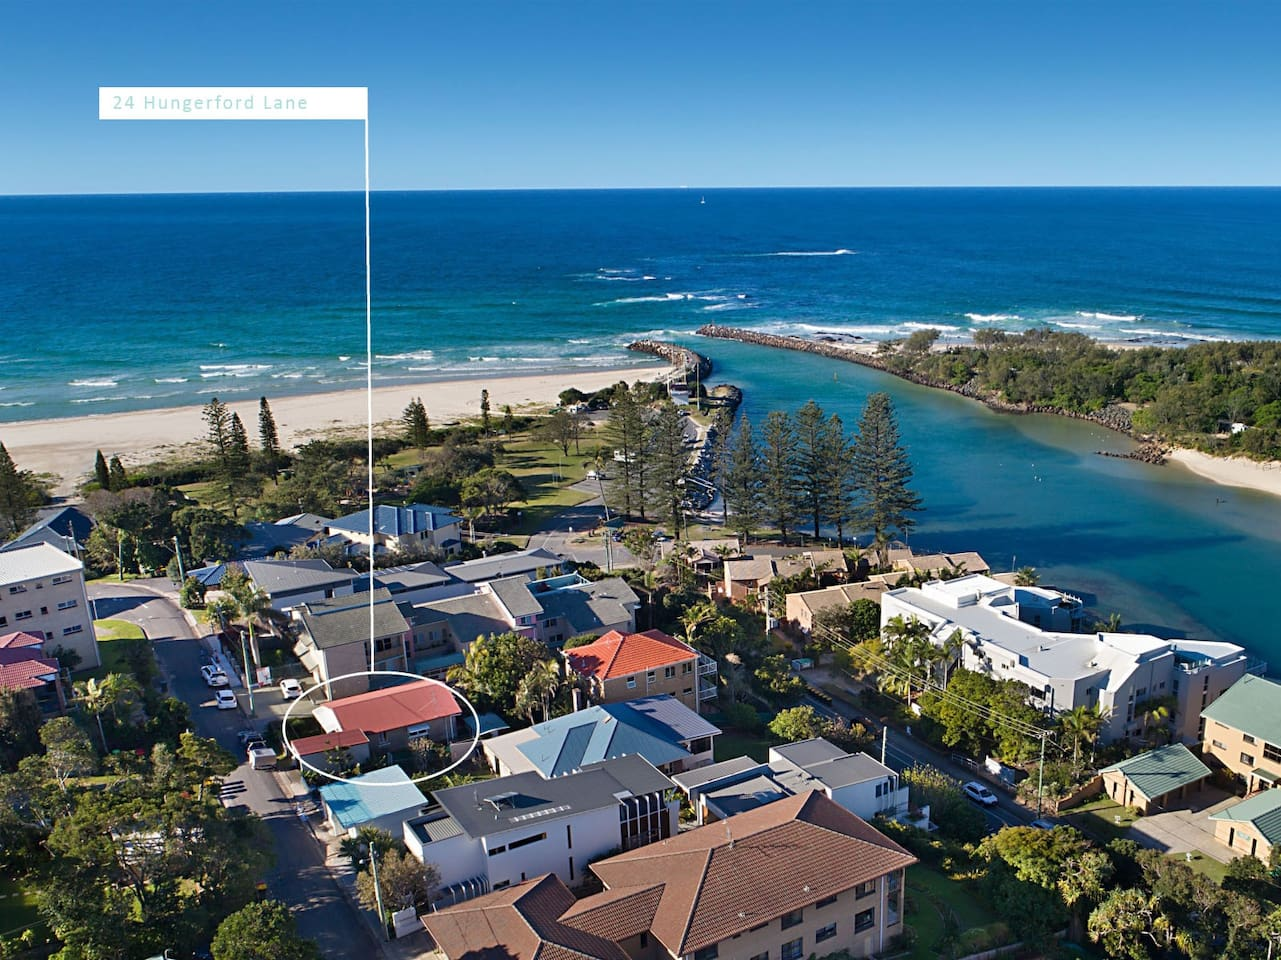 Location! Location! Location! 100m walk to the creek, beach and cafes.